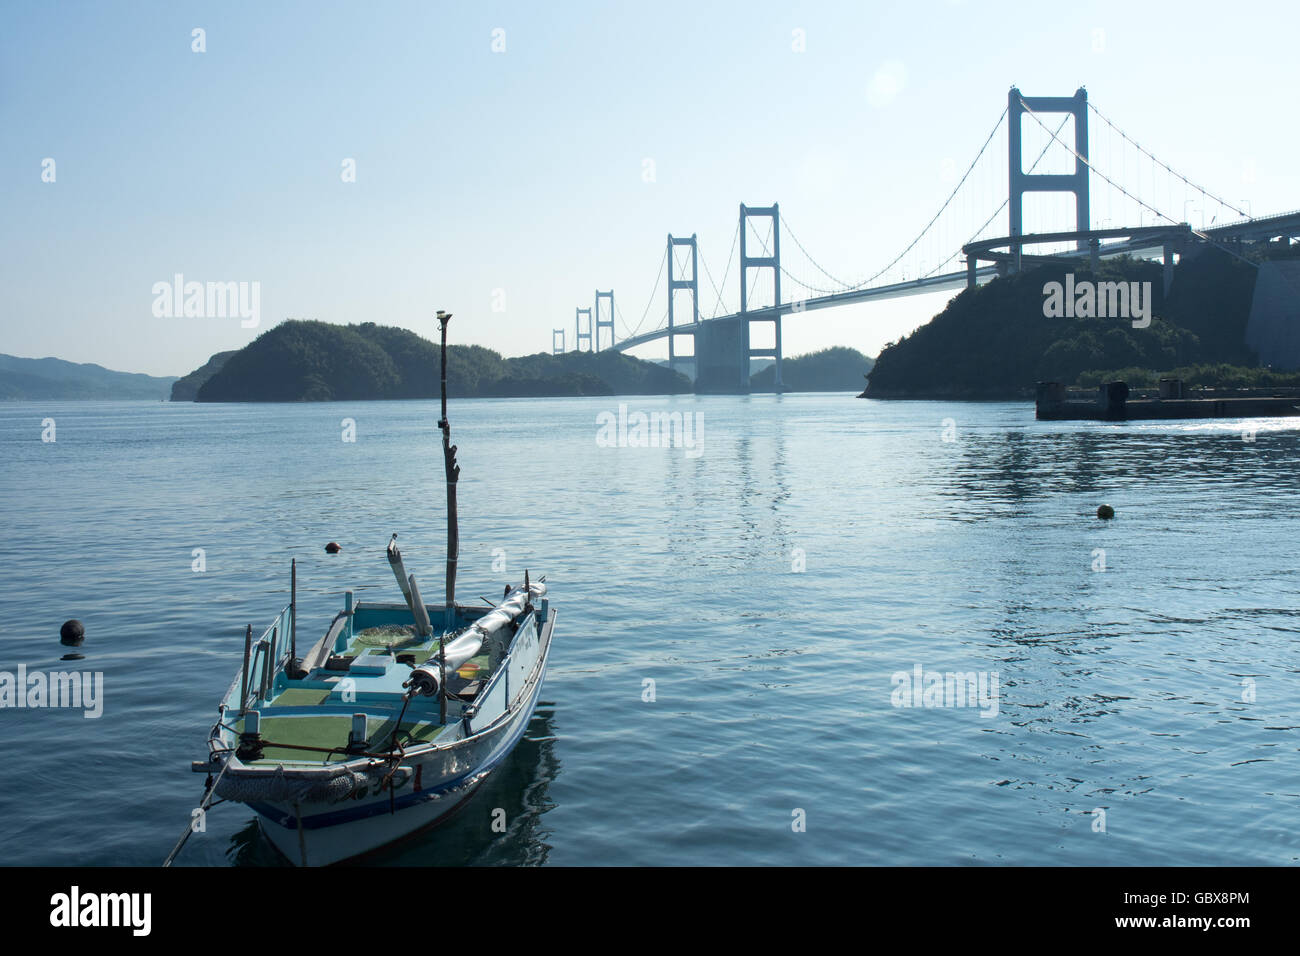 A wooden fishing boat moored in the Seto Inland Sea, and the Kurushima Kaikyo bridges in the background. - Stock Image